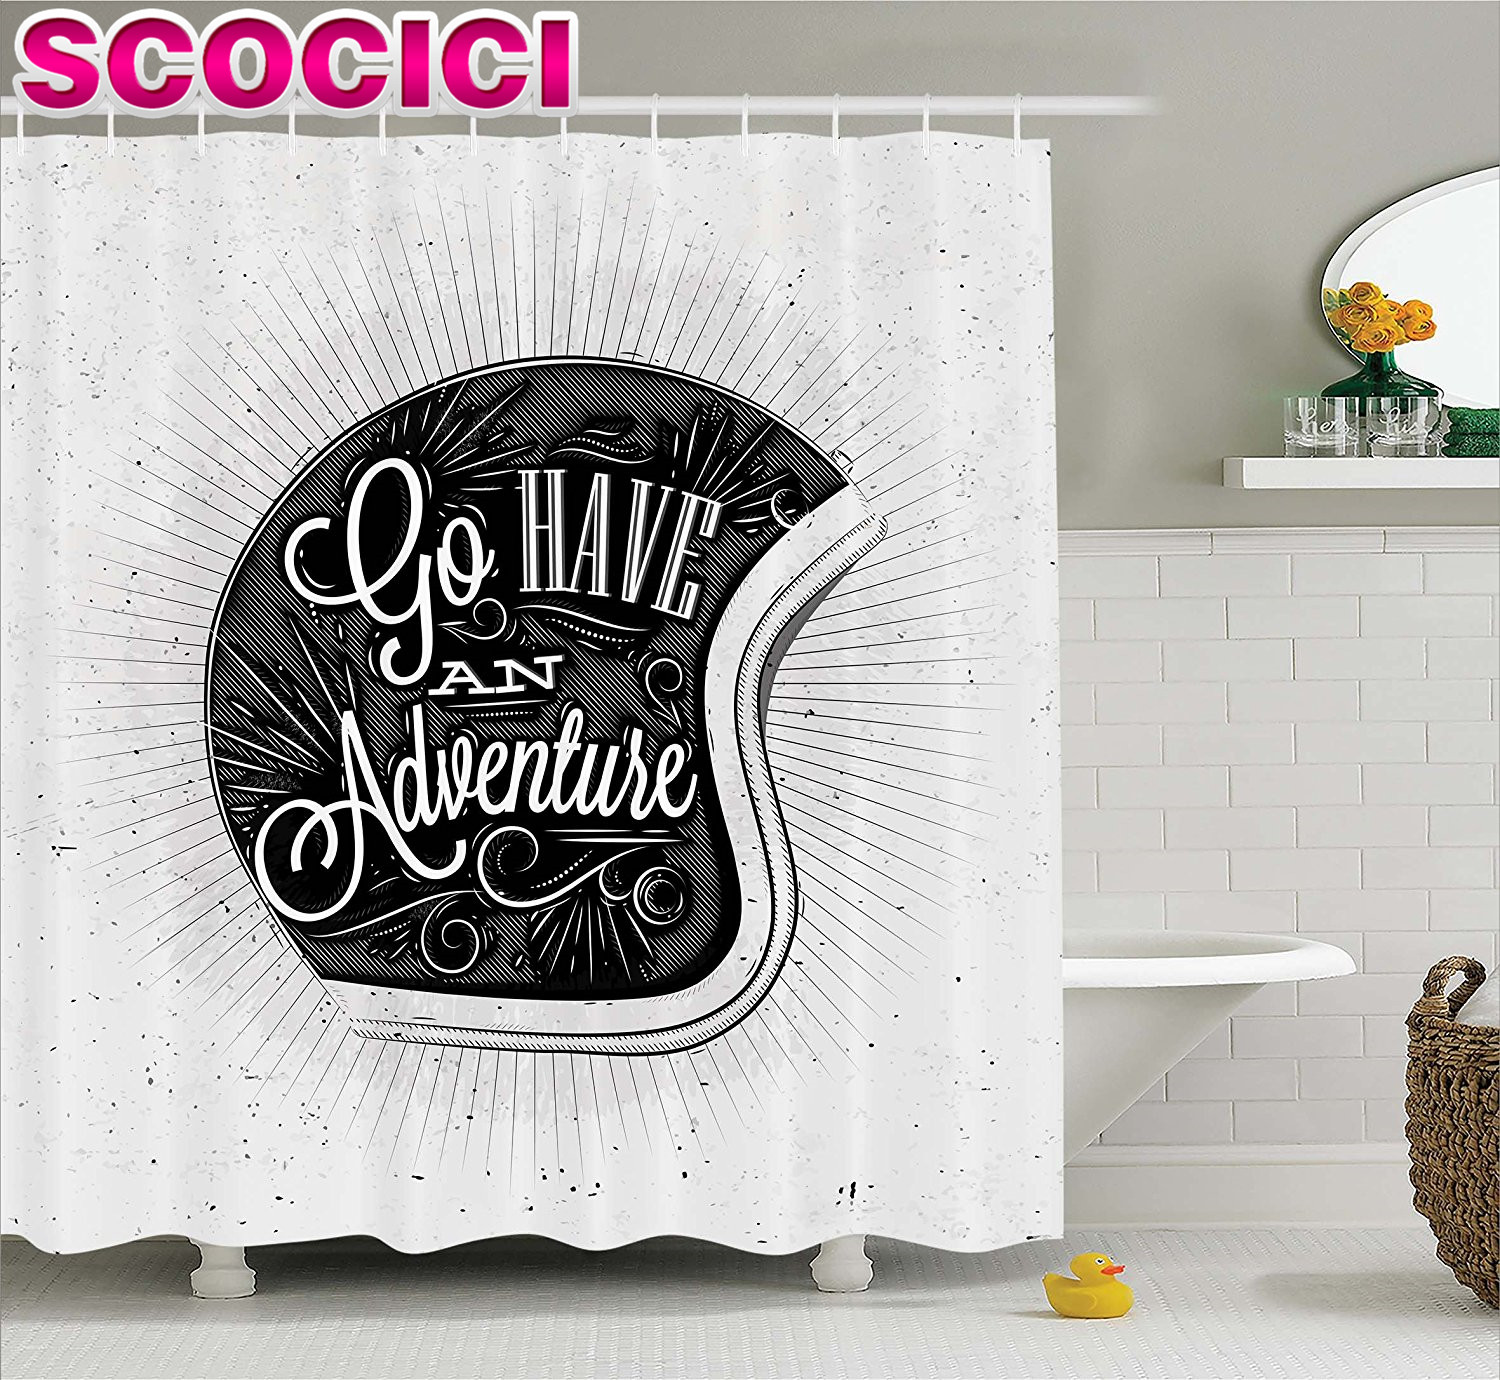 Vintage Decor Shower Curtain Motorcycle Figure With Adventure Quote And  Ornate Lines Contemporary New Graphic Fabric